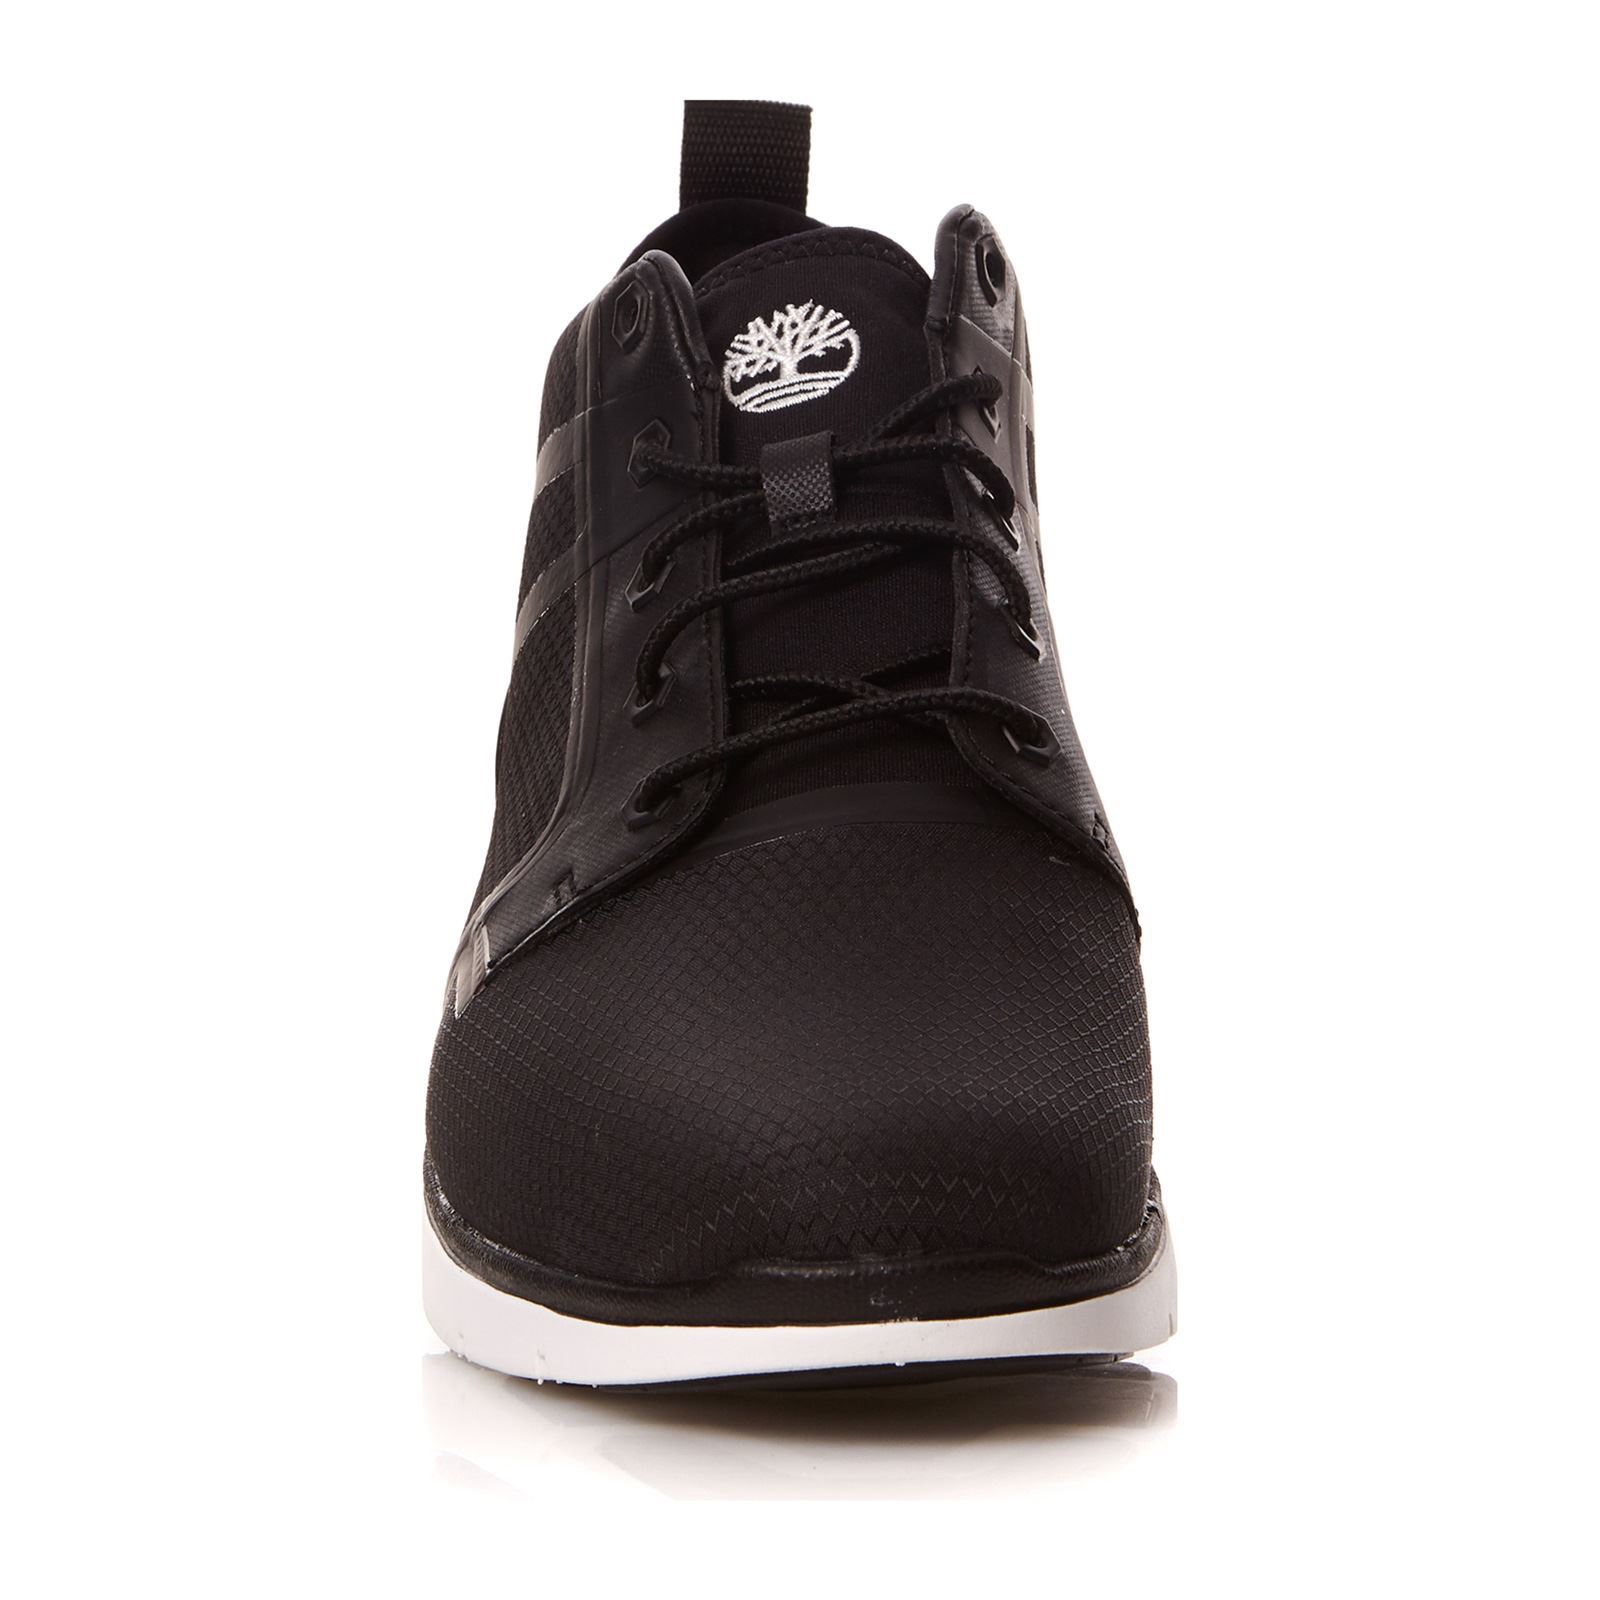 Killington Baskets montantes en cuir noir